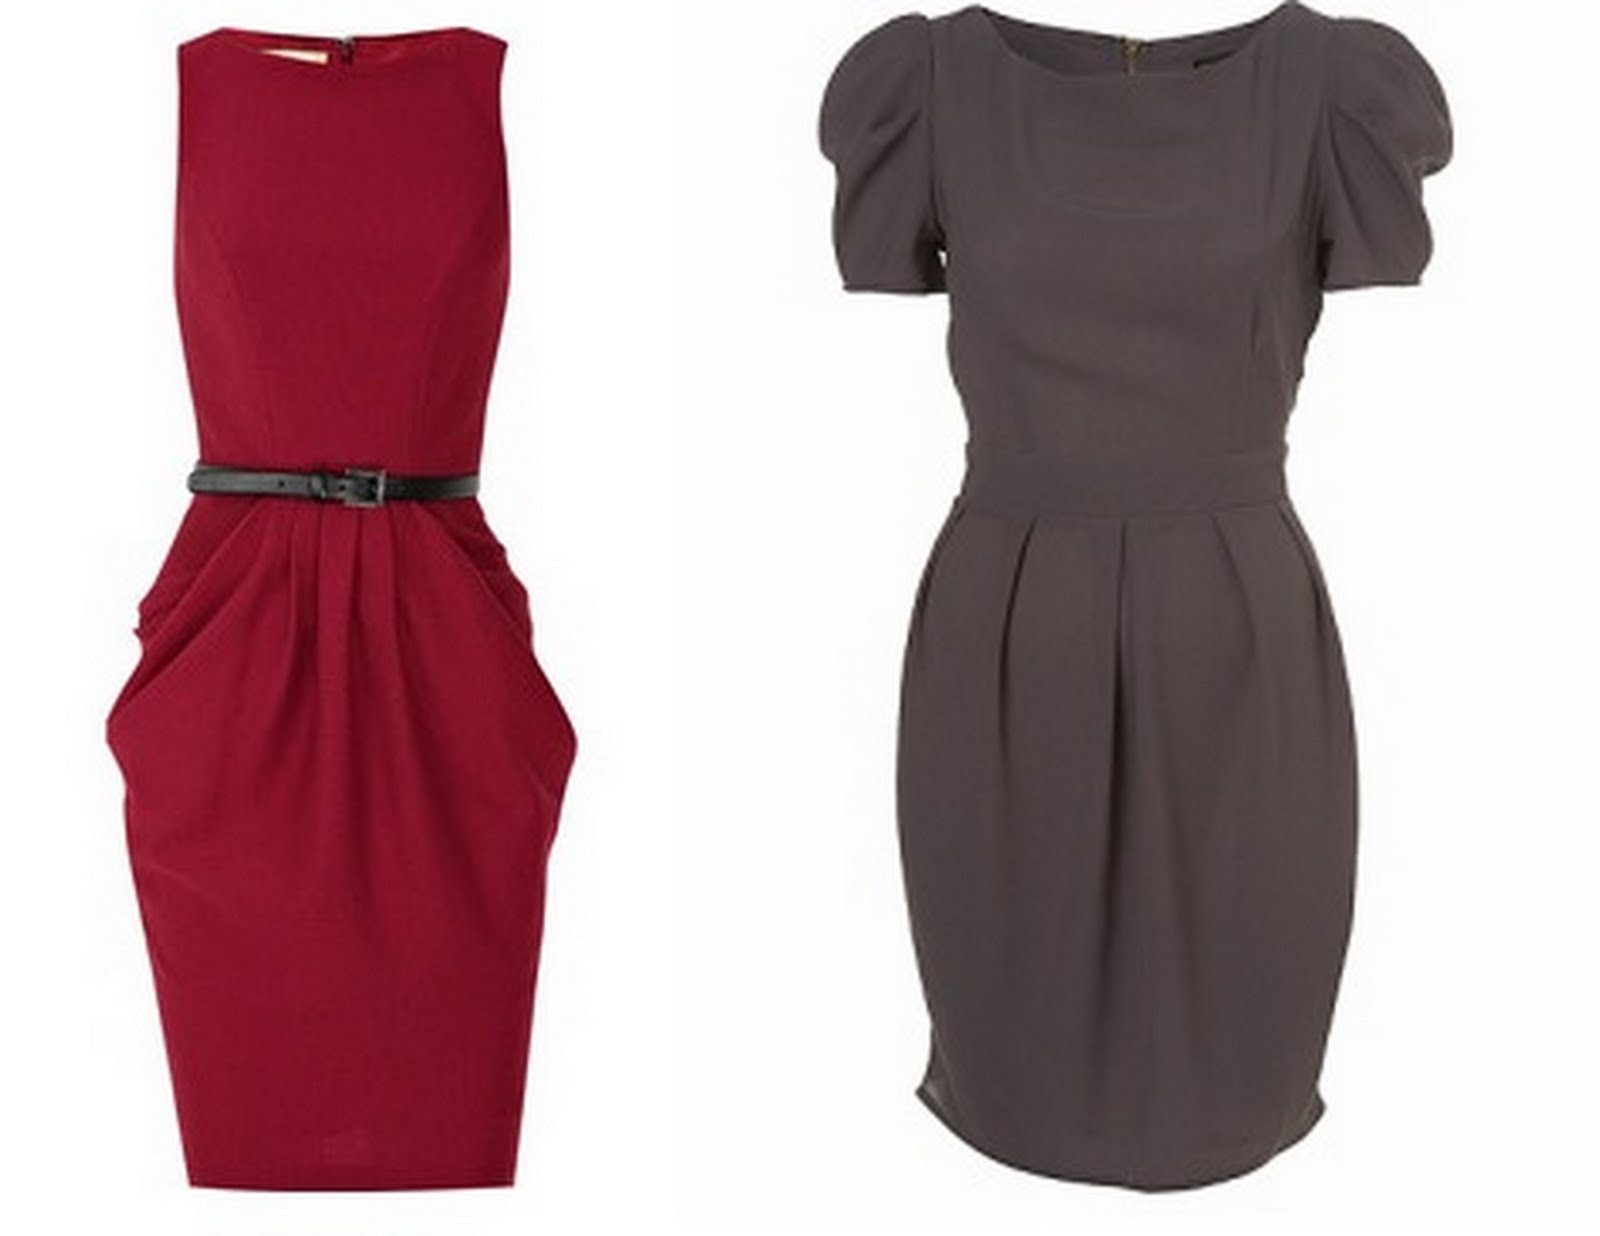 Work dress at ShopStyle Shop popular brands and stores to find work dress